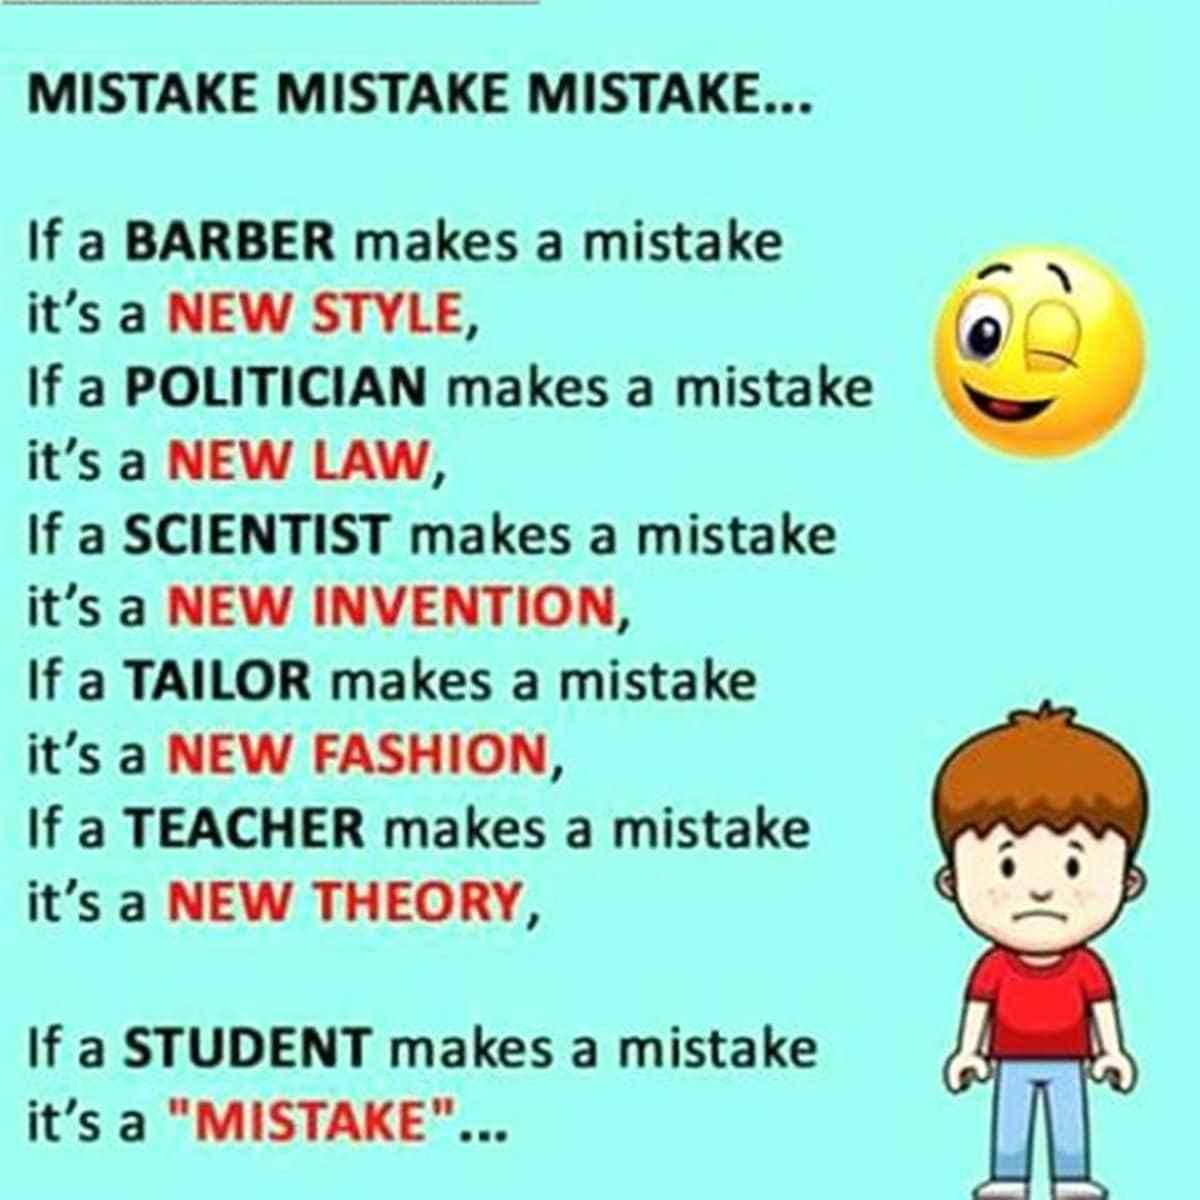 Funny Sayings This Is Why You Shouldn T Lose Your Pen Eslbuzz Learning English English Jokes Funny English Jokes Best Funny Jokes